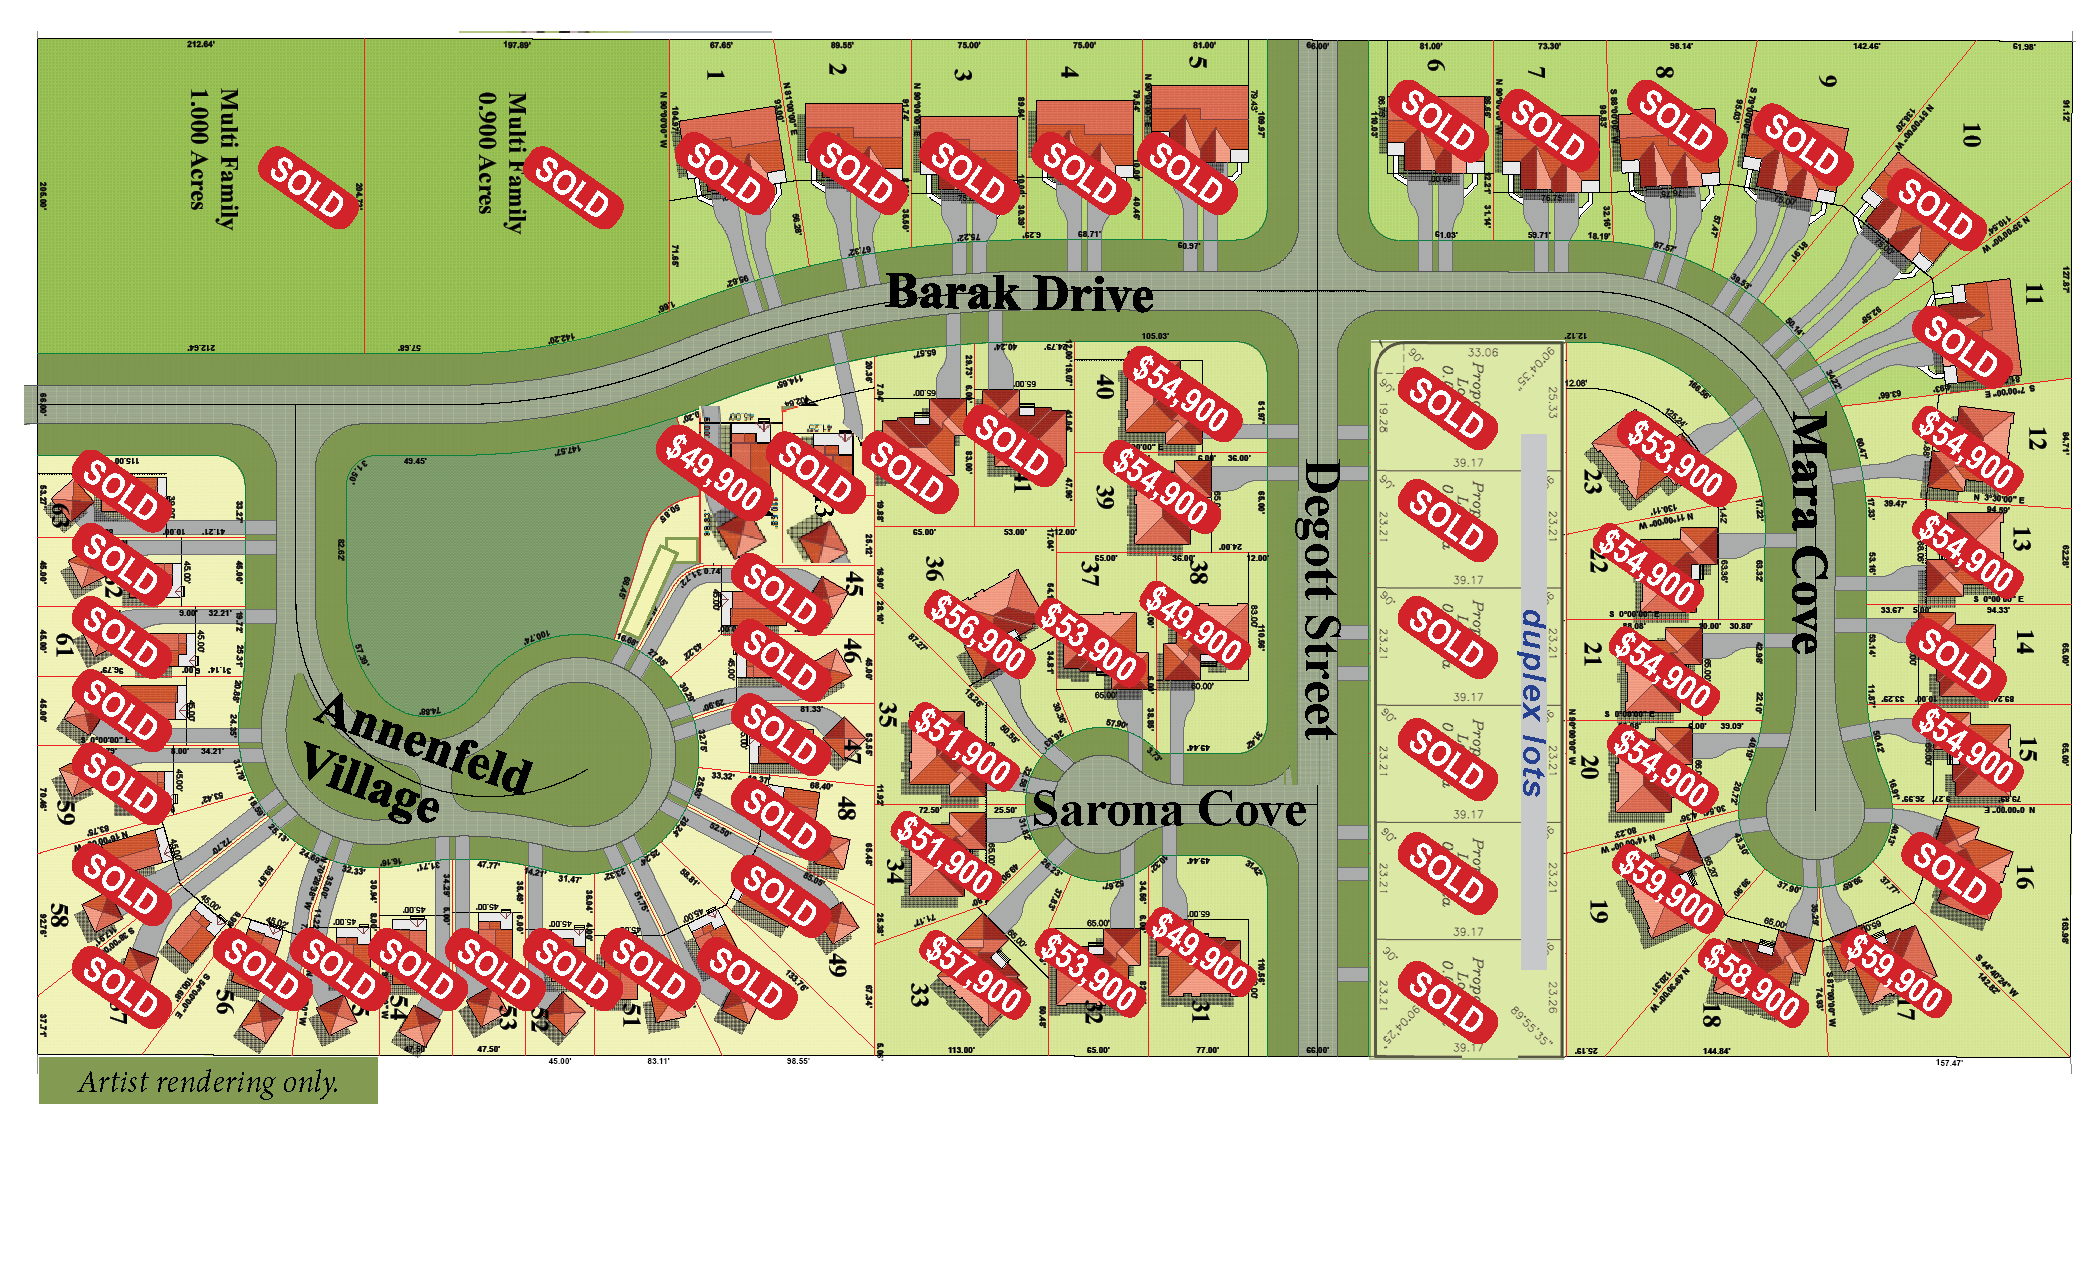 Annenfeld Village Development Site Map